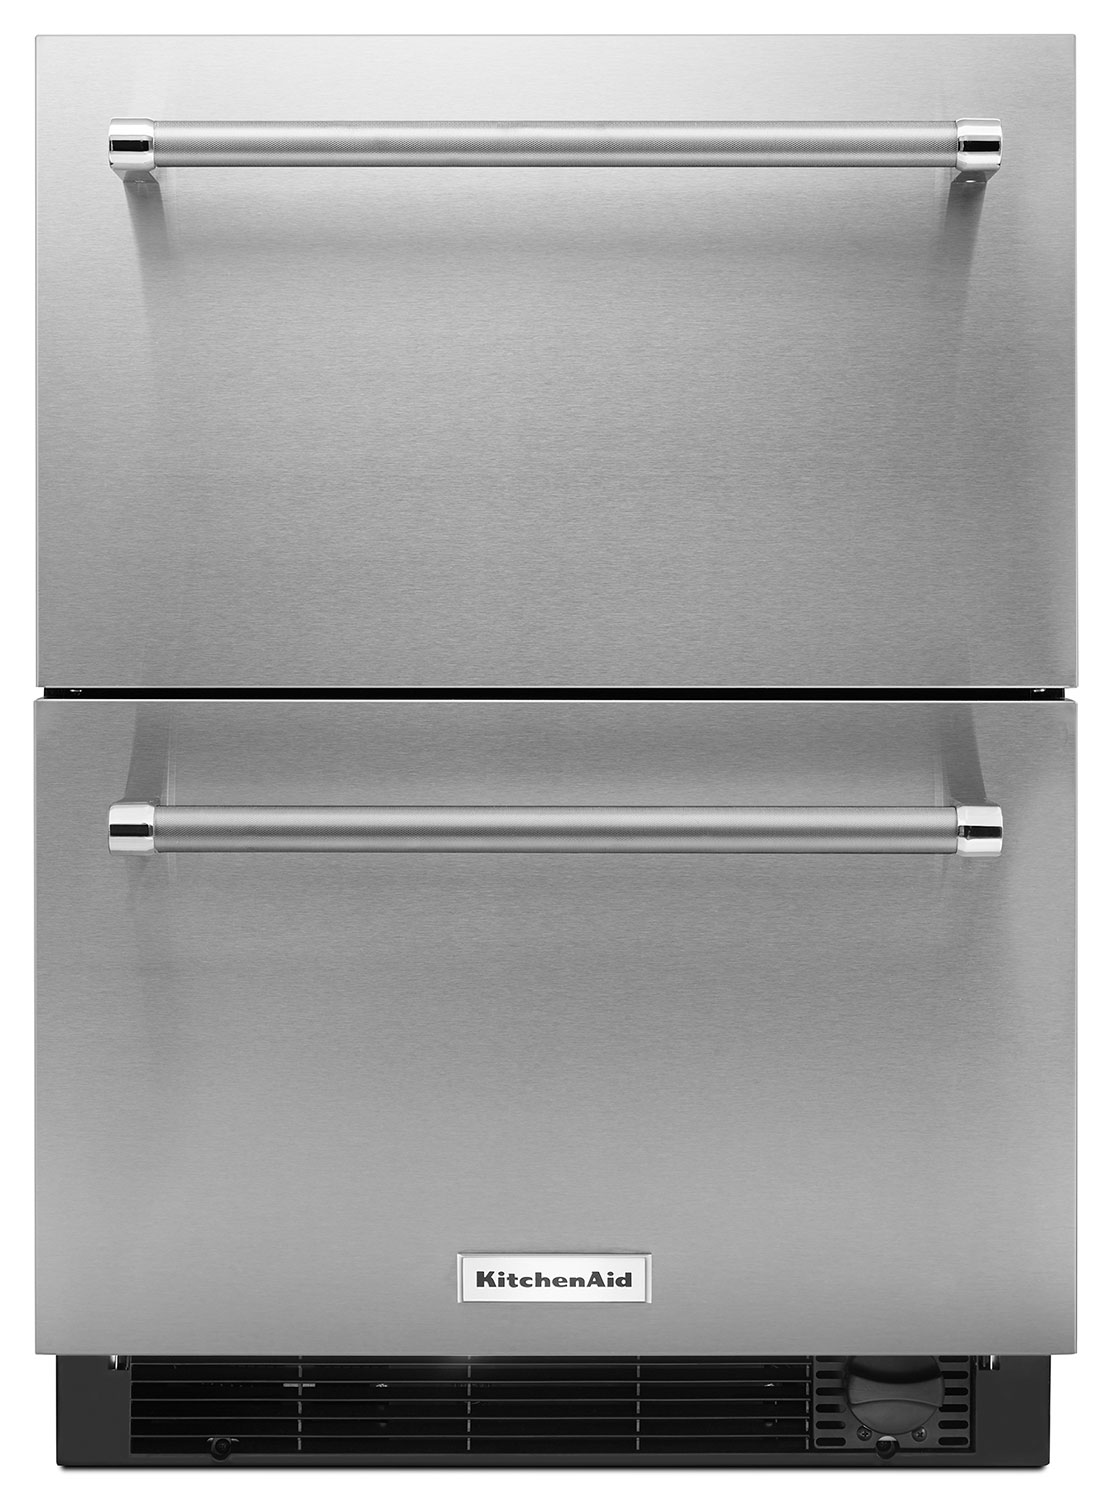 Kitchenaid Stainless Steel Compact Refrigerator W Freezer